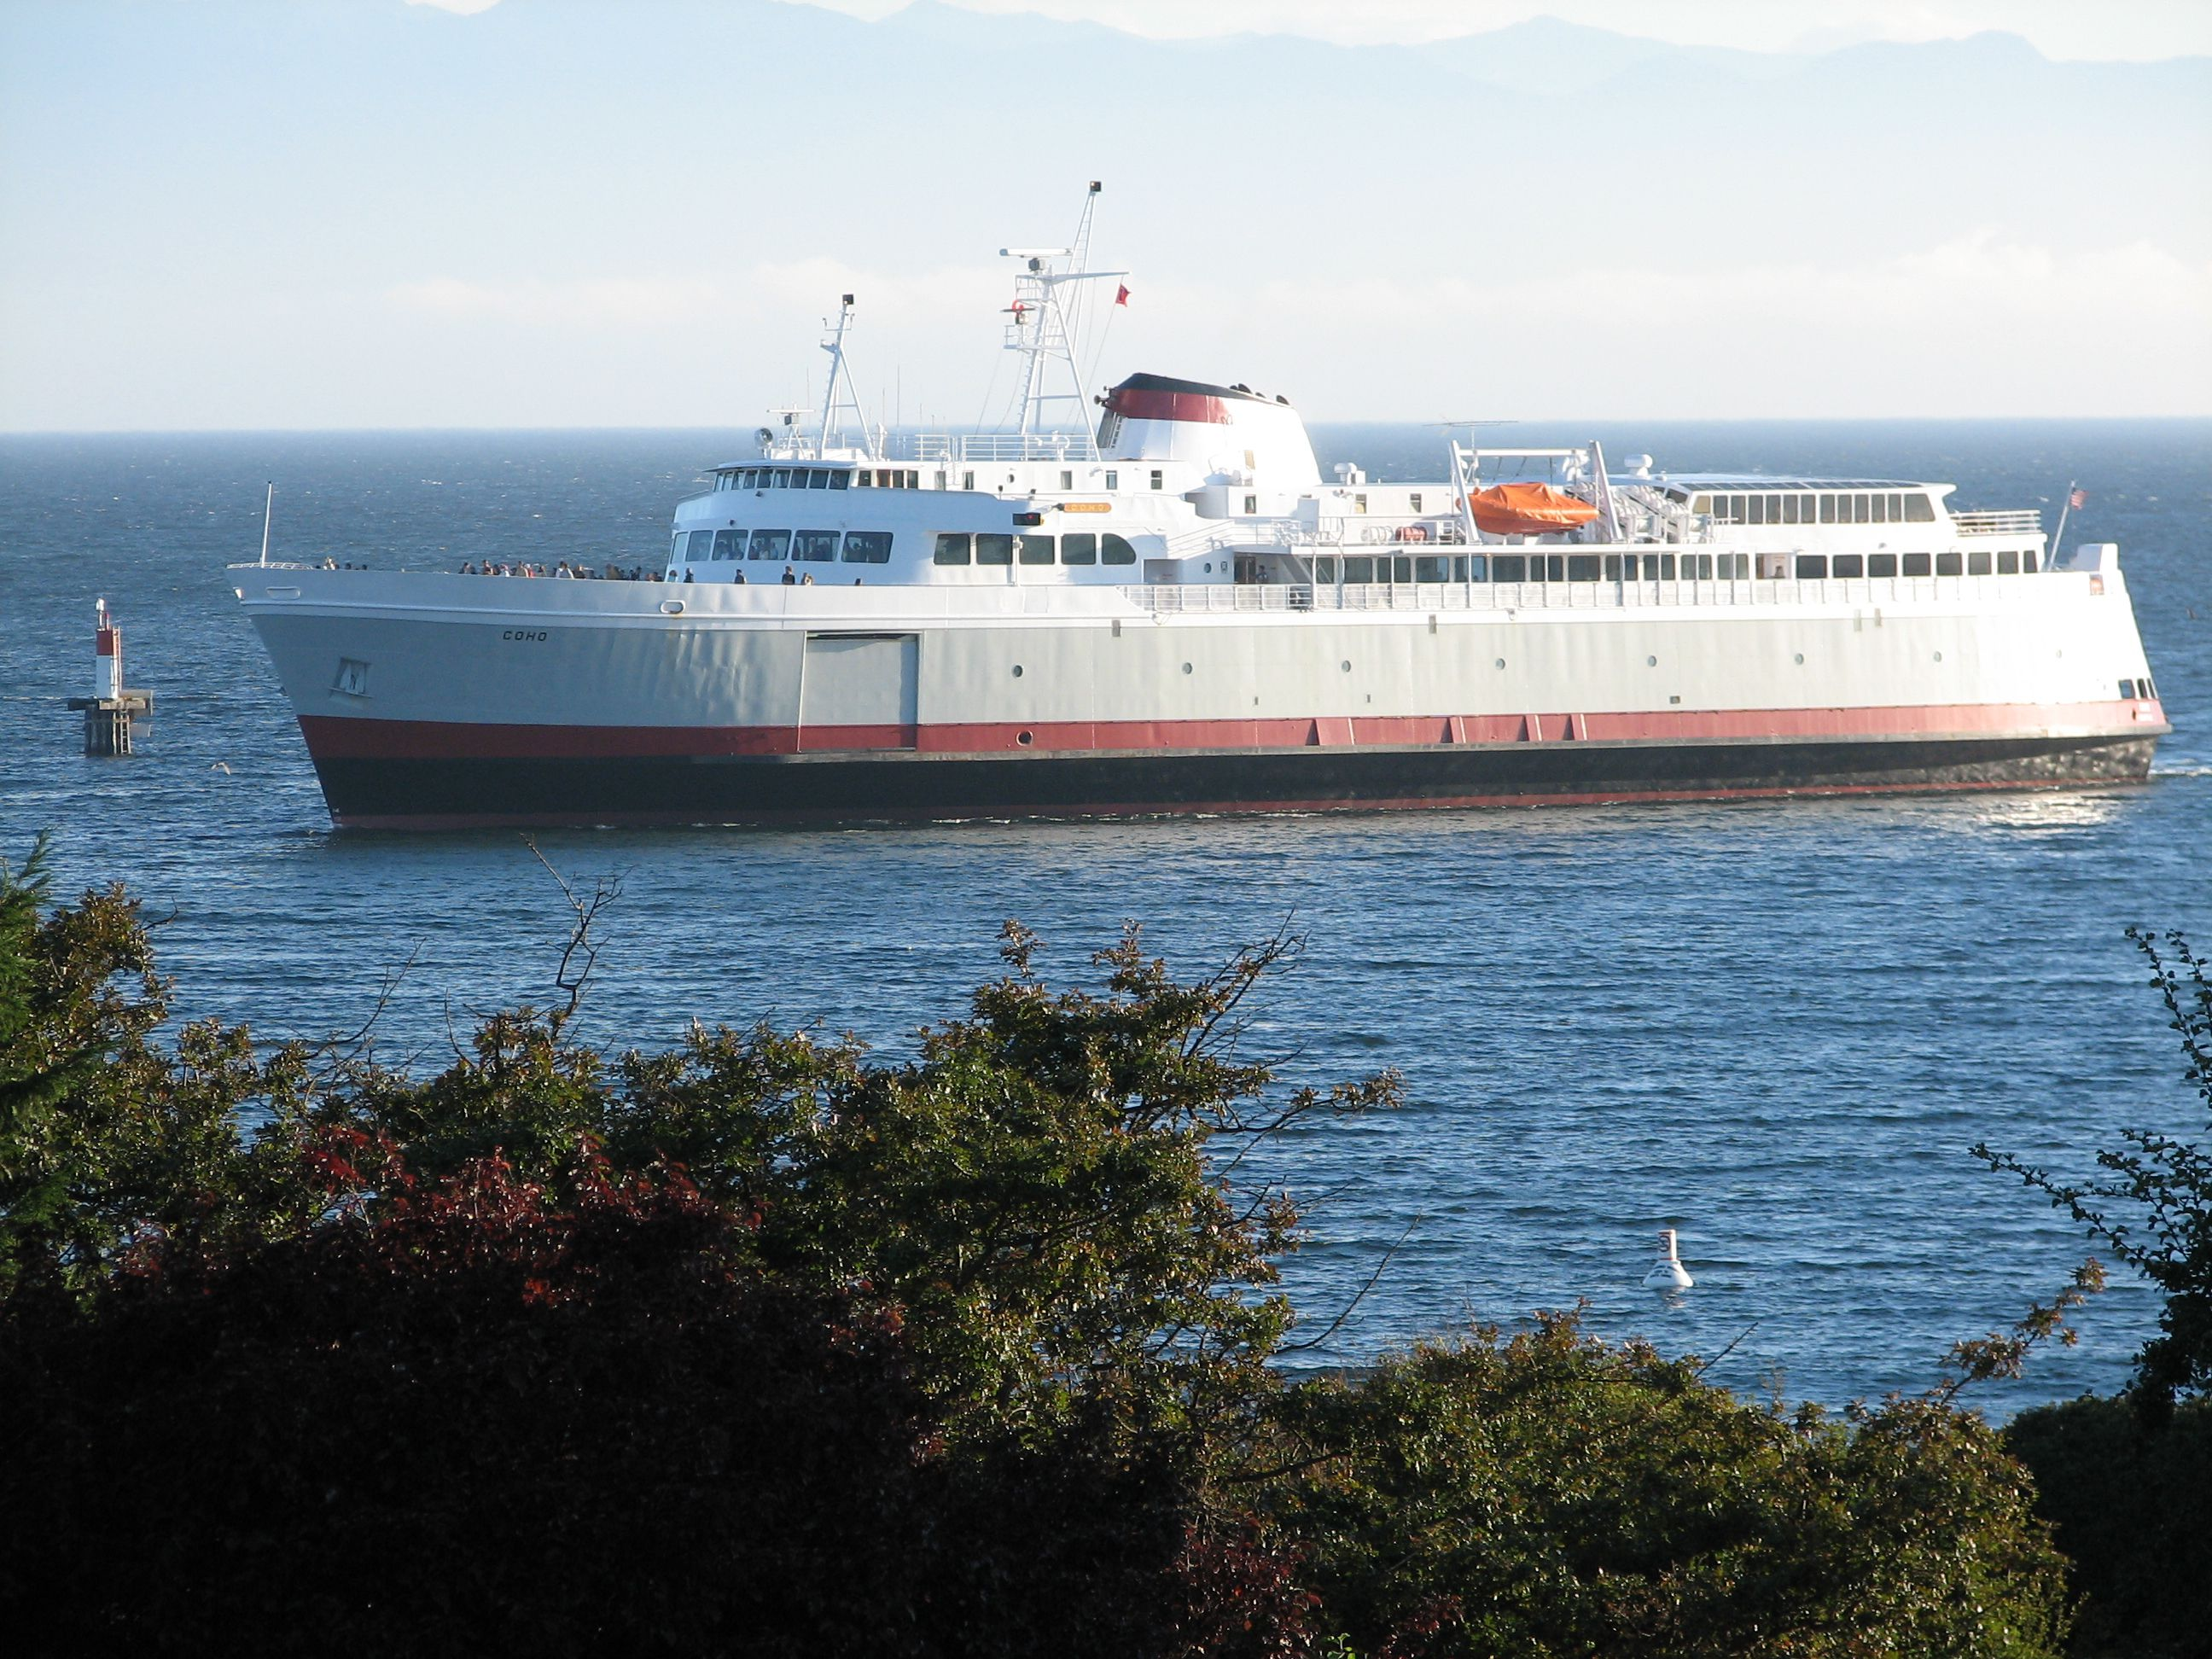 The Coho ferry arrives from Port Angeles in Washington.